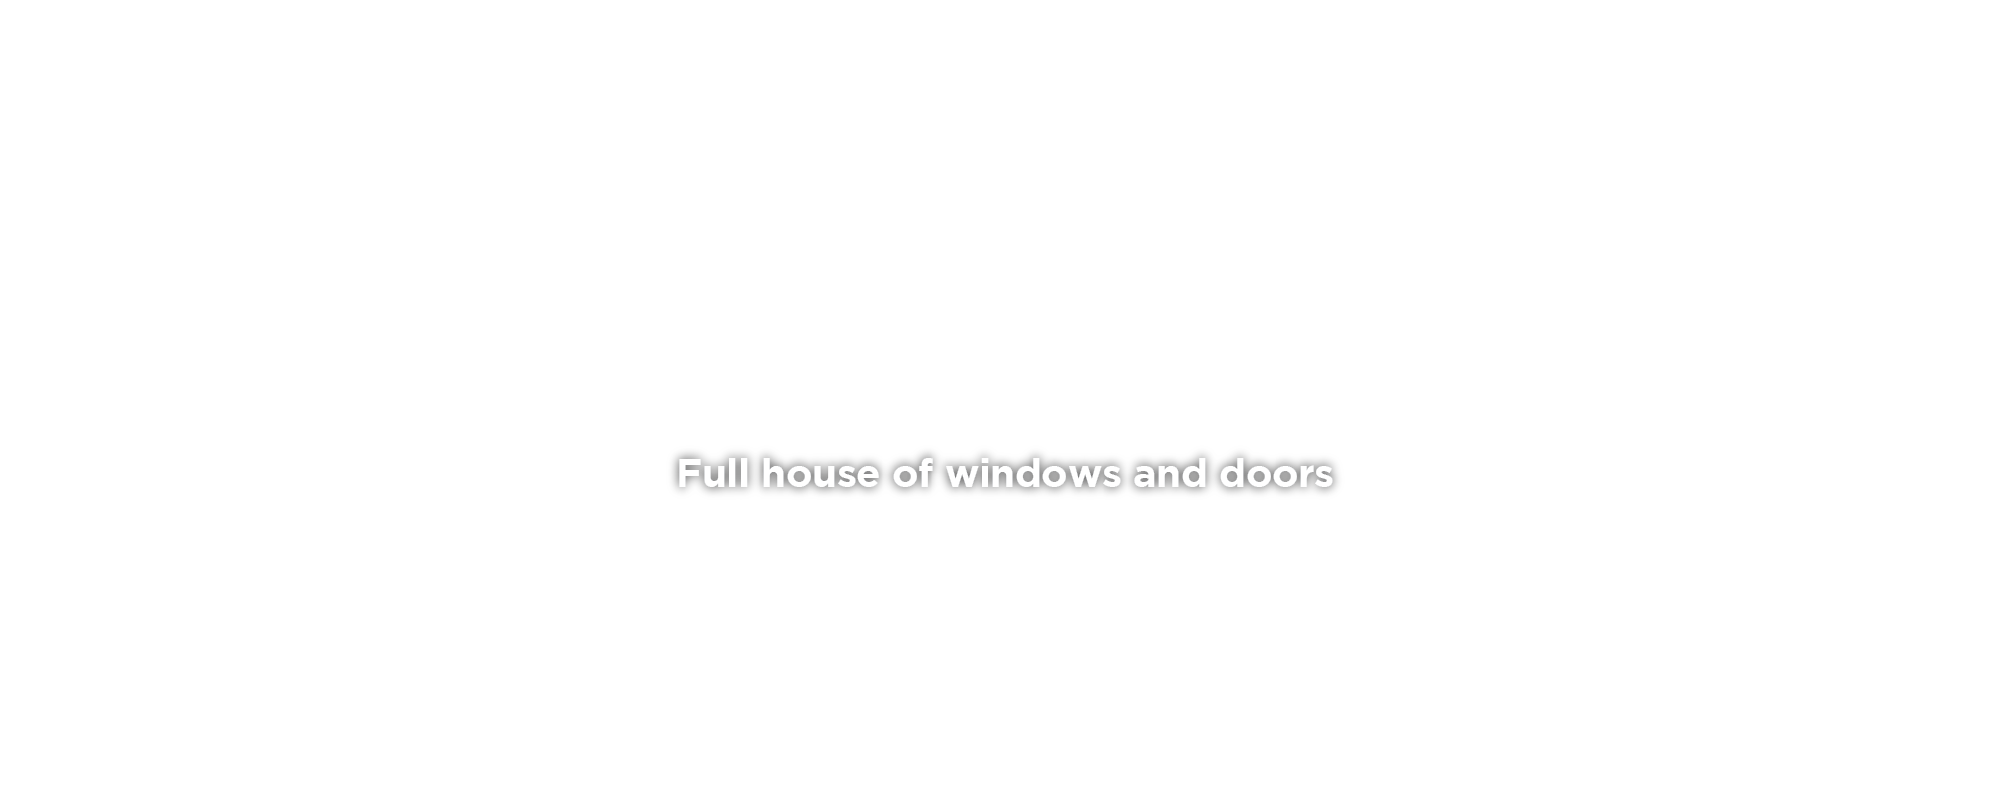 Full House of Windows and Doors